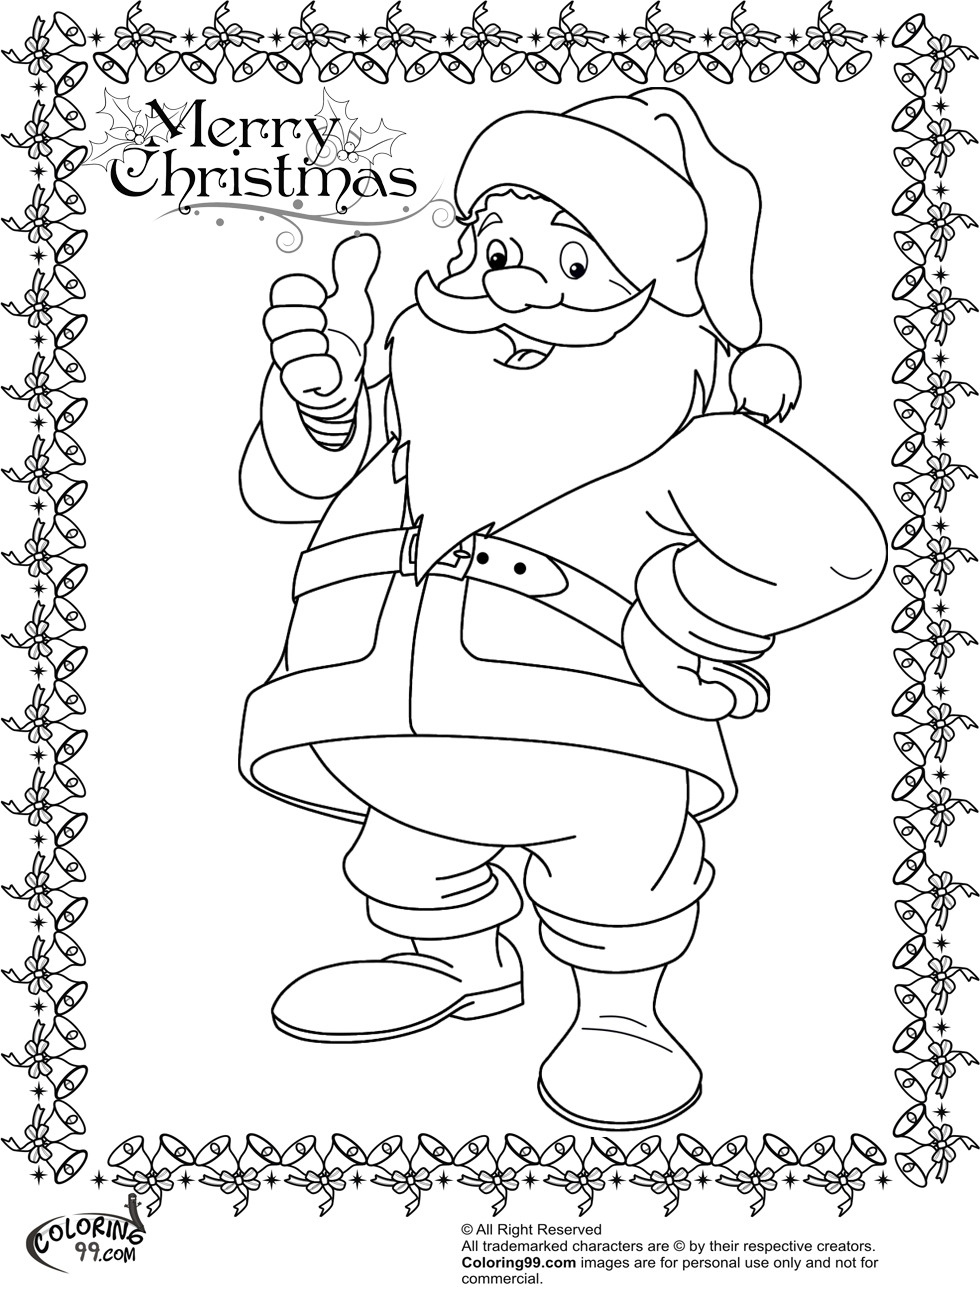 funny santa claus coloring pages for kids - Santa Claus Coloring Pages